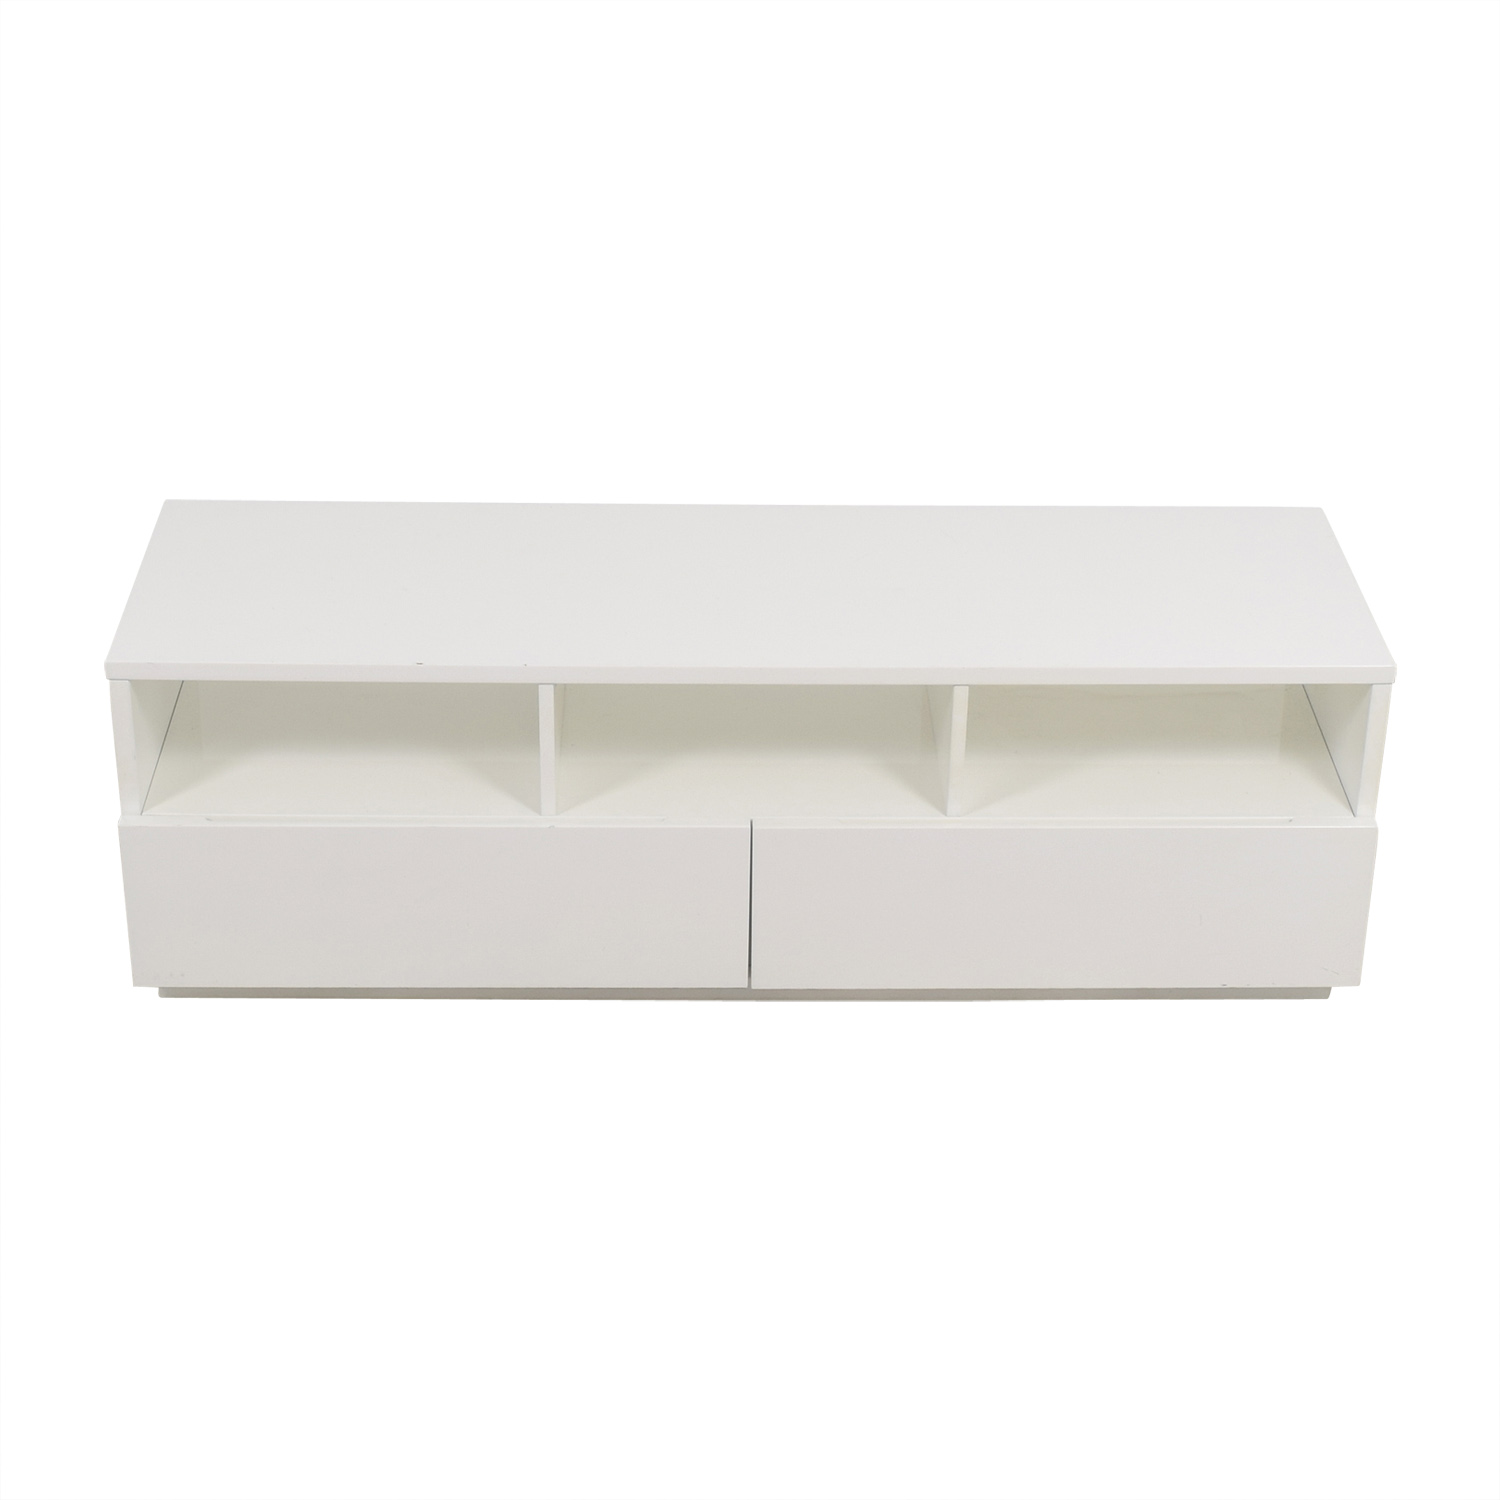 ... Buy CB2 Chill White Media Console With Two Drawers CB2 Media Units ...